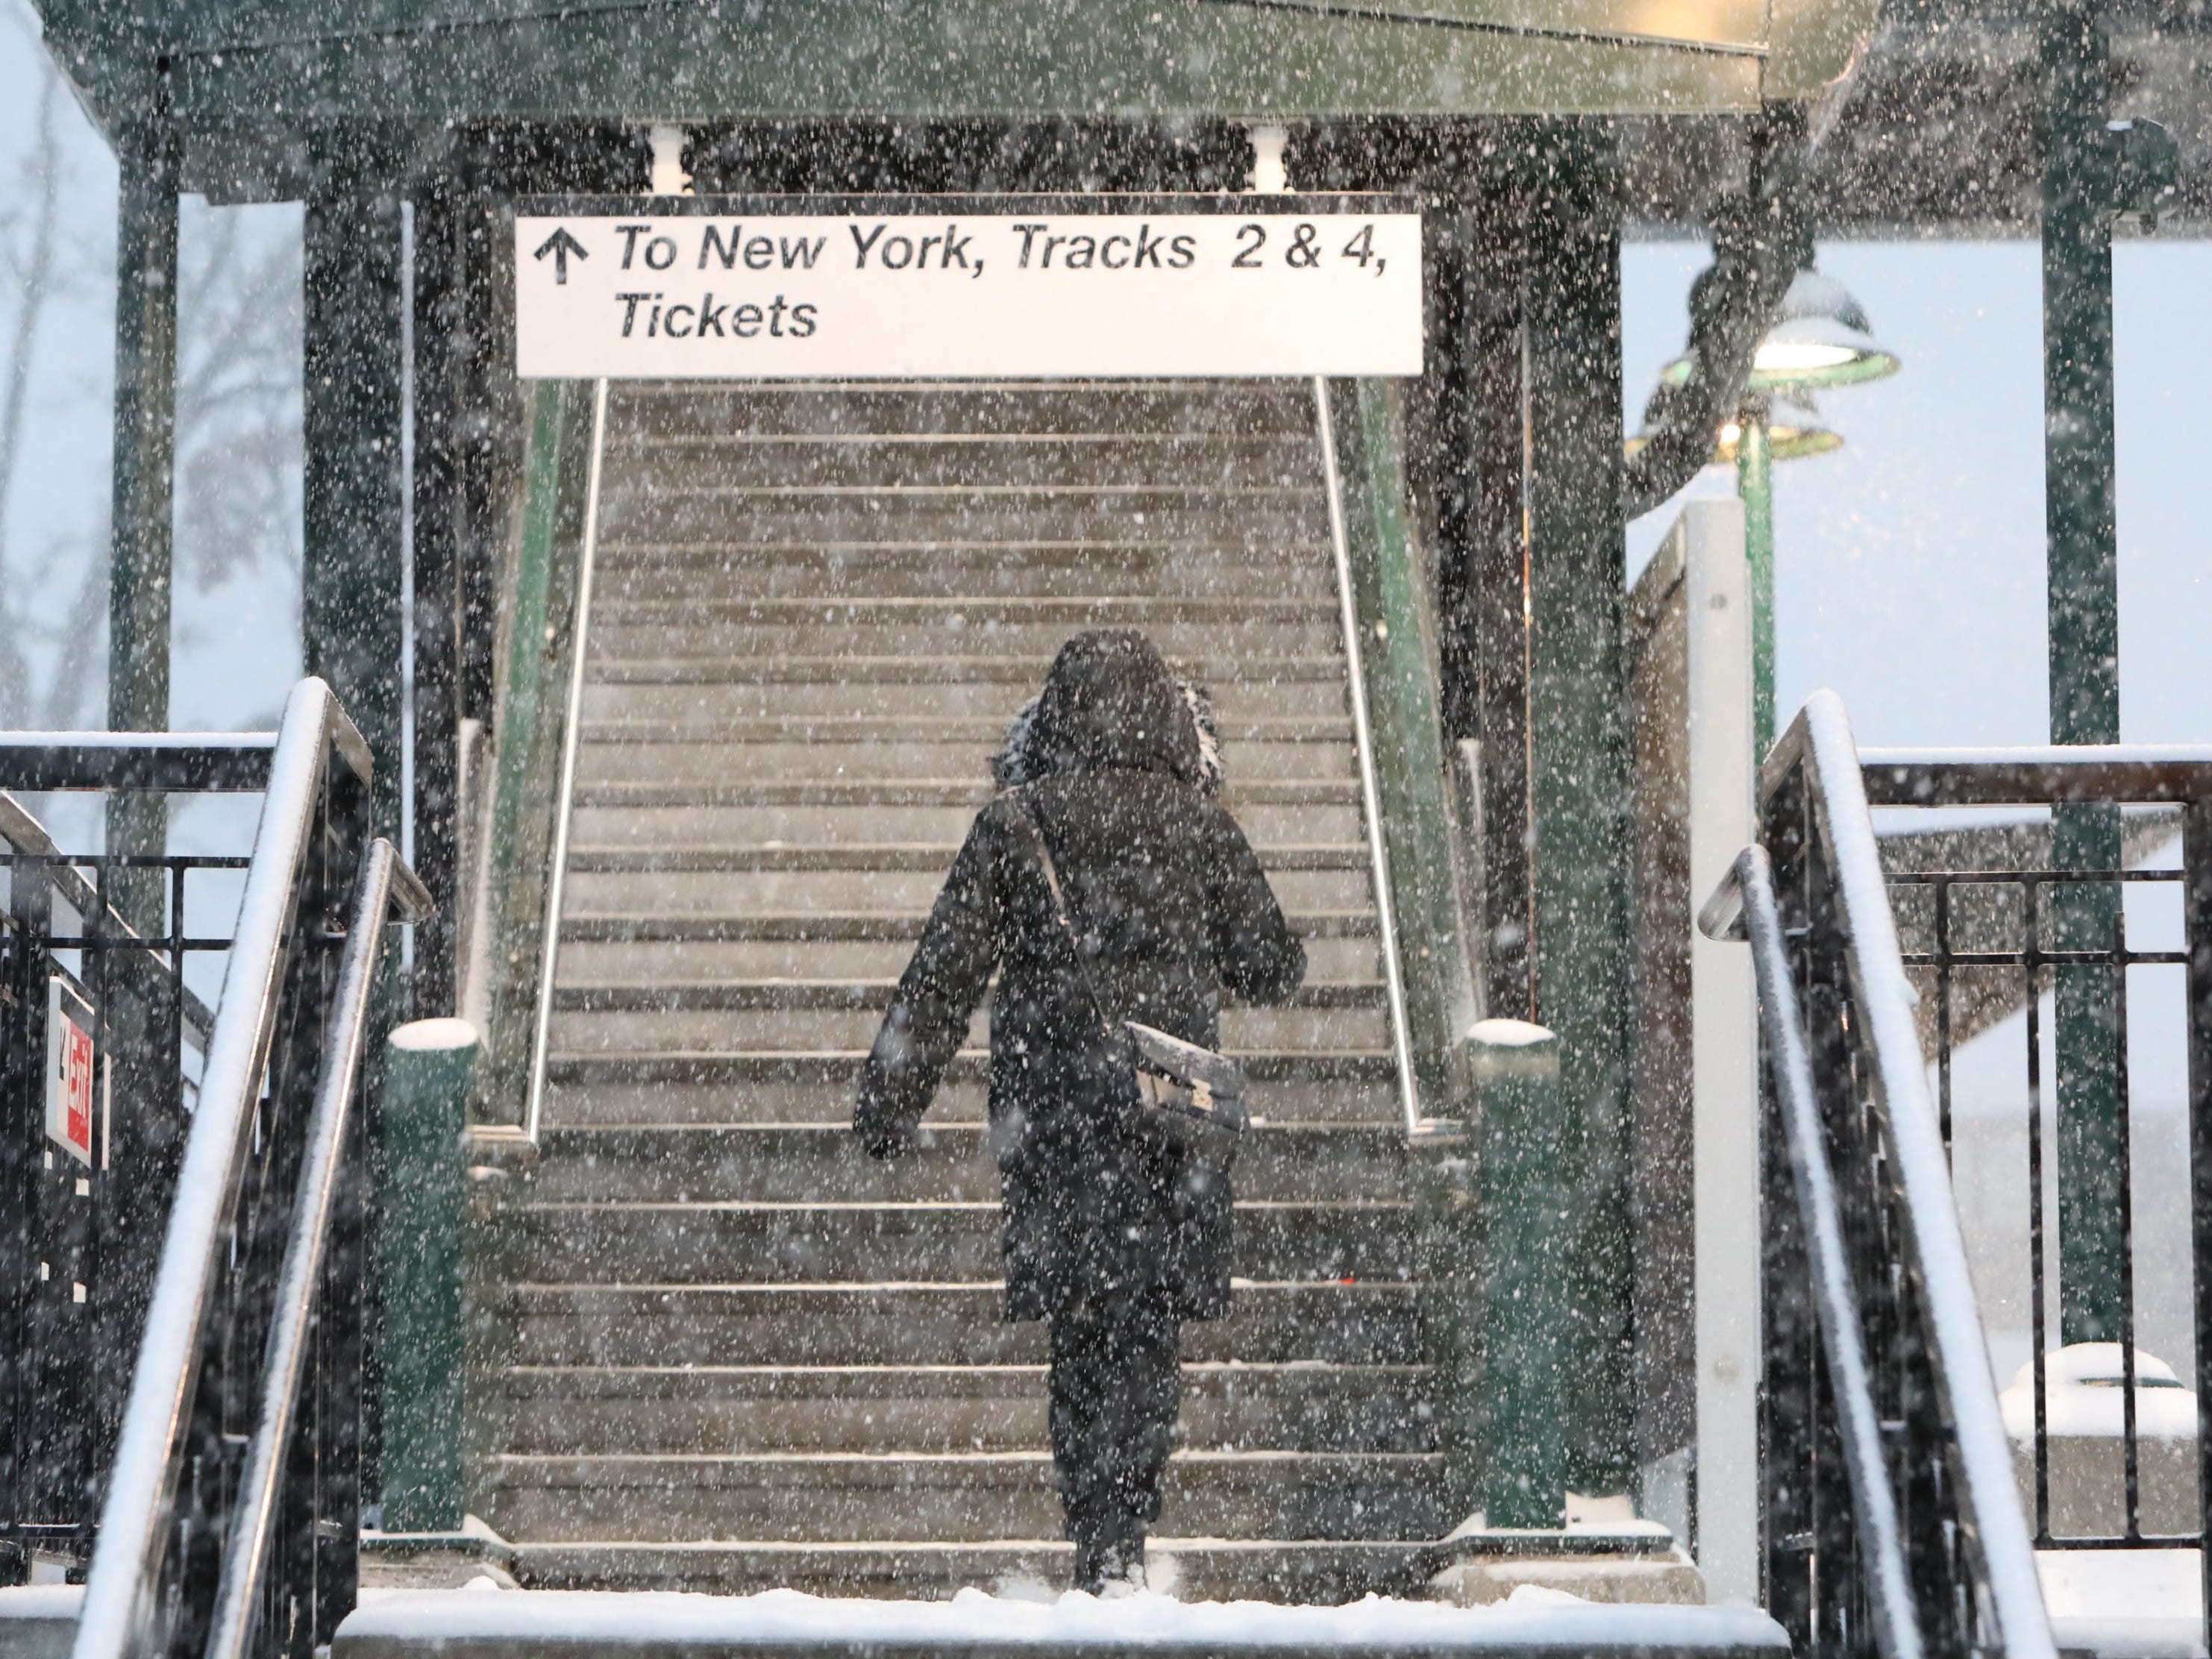 A Metro-North commuter takes the stairs to the New York City bound platform at the train station in Tarrytown, N.Y. during a steady snowfall Nov. 15, 2108.